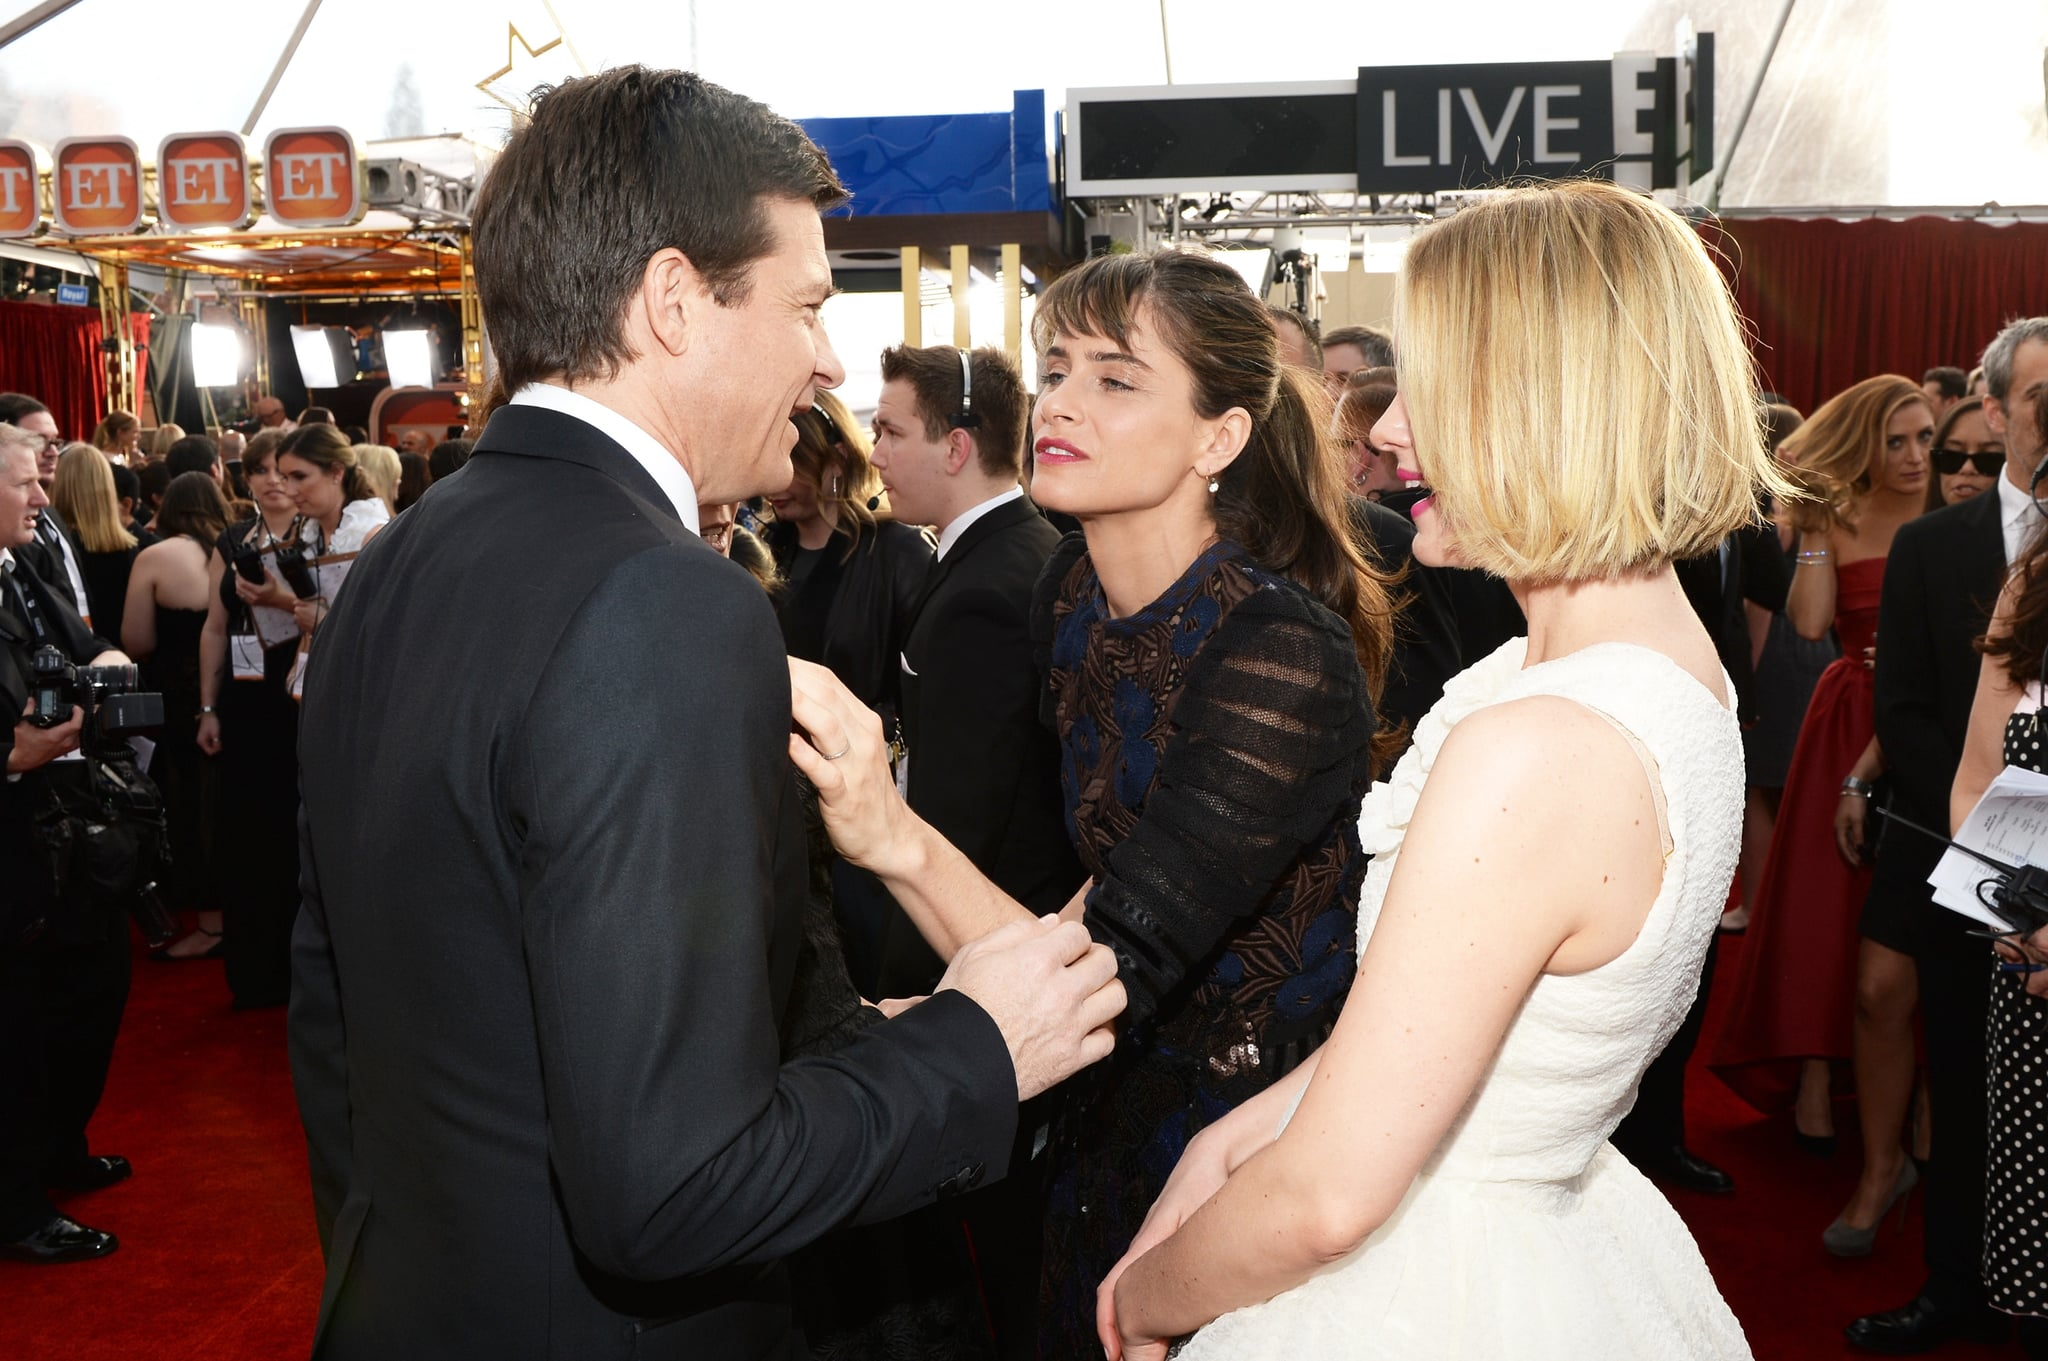 Jason Bateman and Amanda Peet circled up with Sarah Paulson.